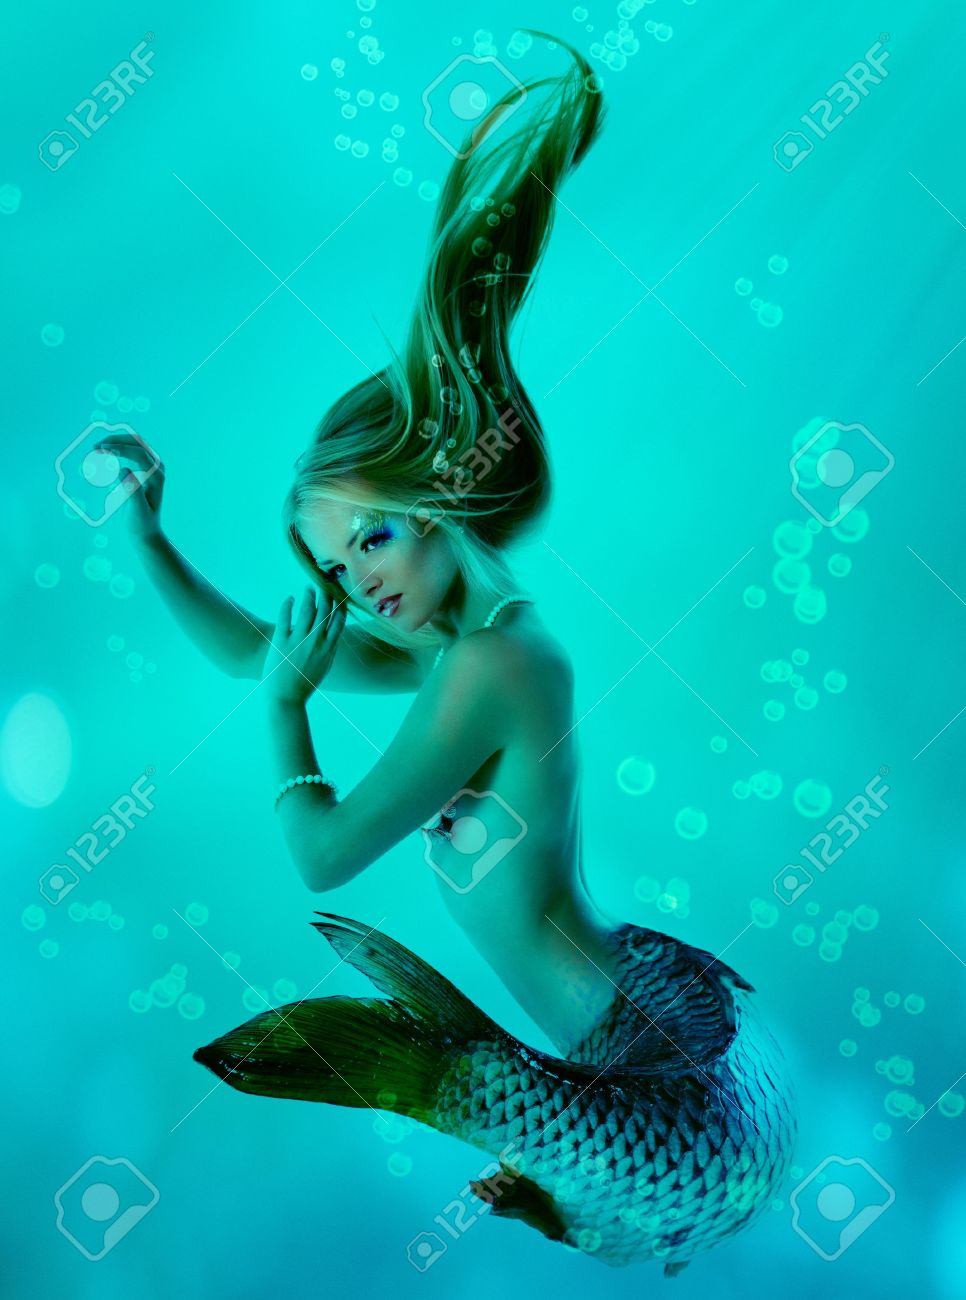 Mermaid Beautiful Magic Underwater Mythology Stock Photo  Picture     mermaid beautiful magic underwater mythology Stock Photo   13205280